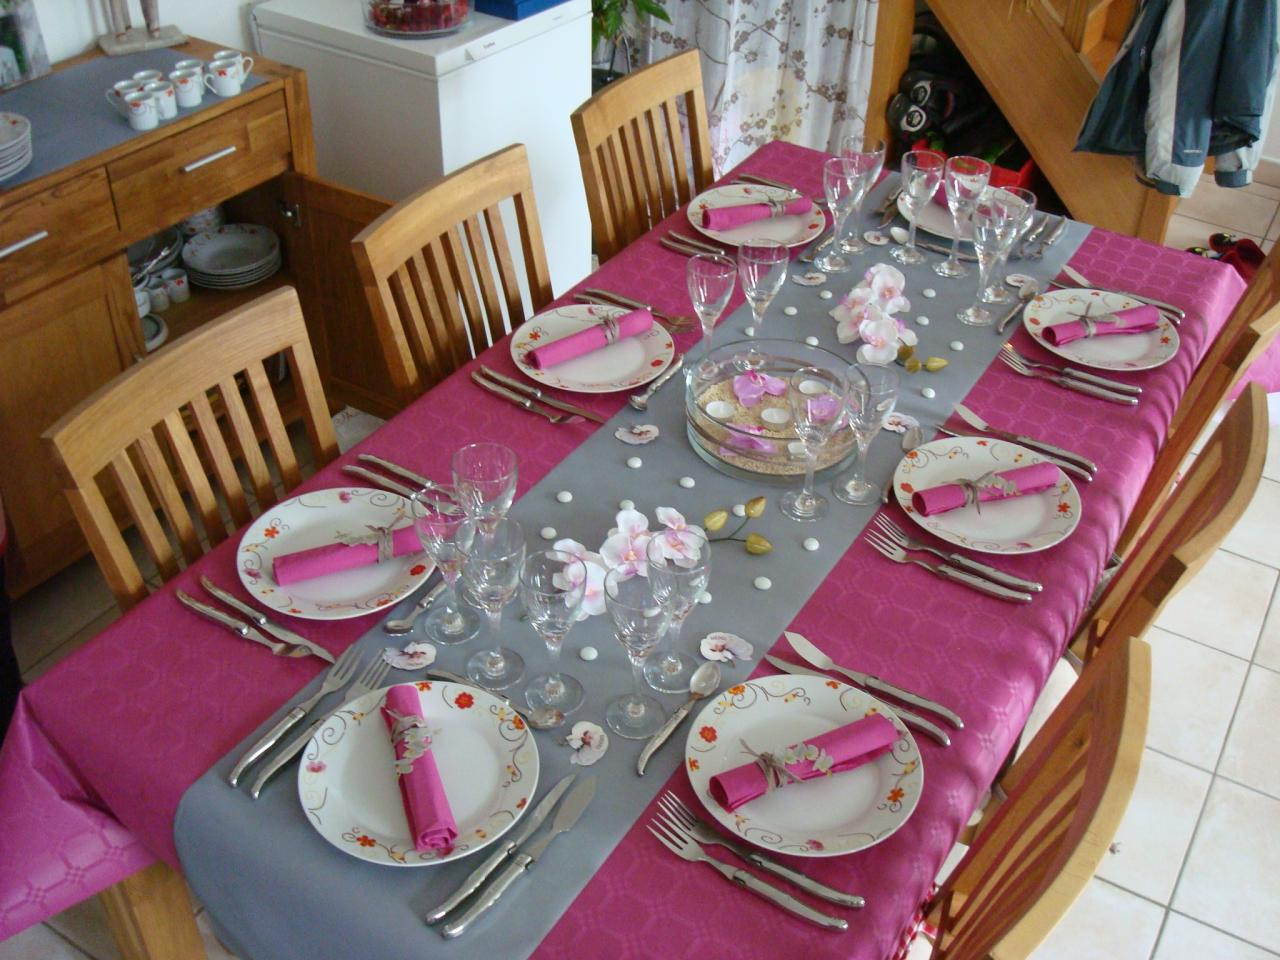 Deco De Table Anniversaire Photos Bild Galeria Dêcoration De Table Pour Anniversaire